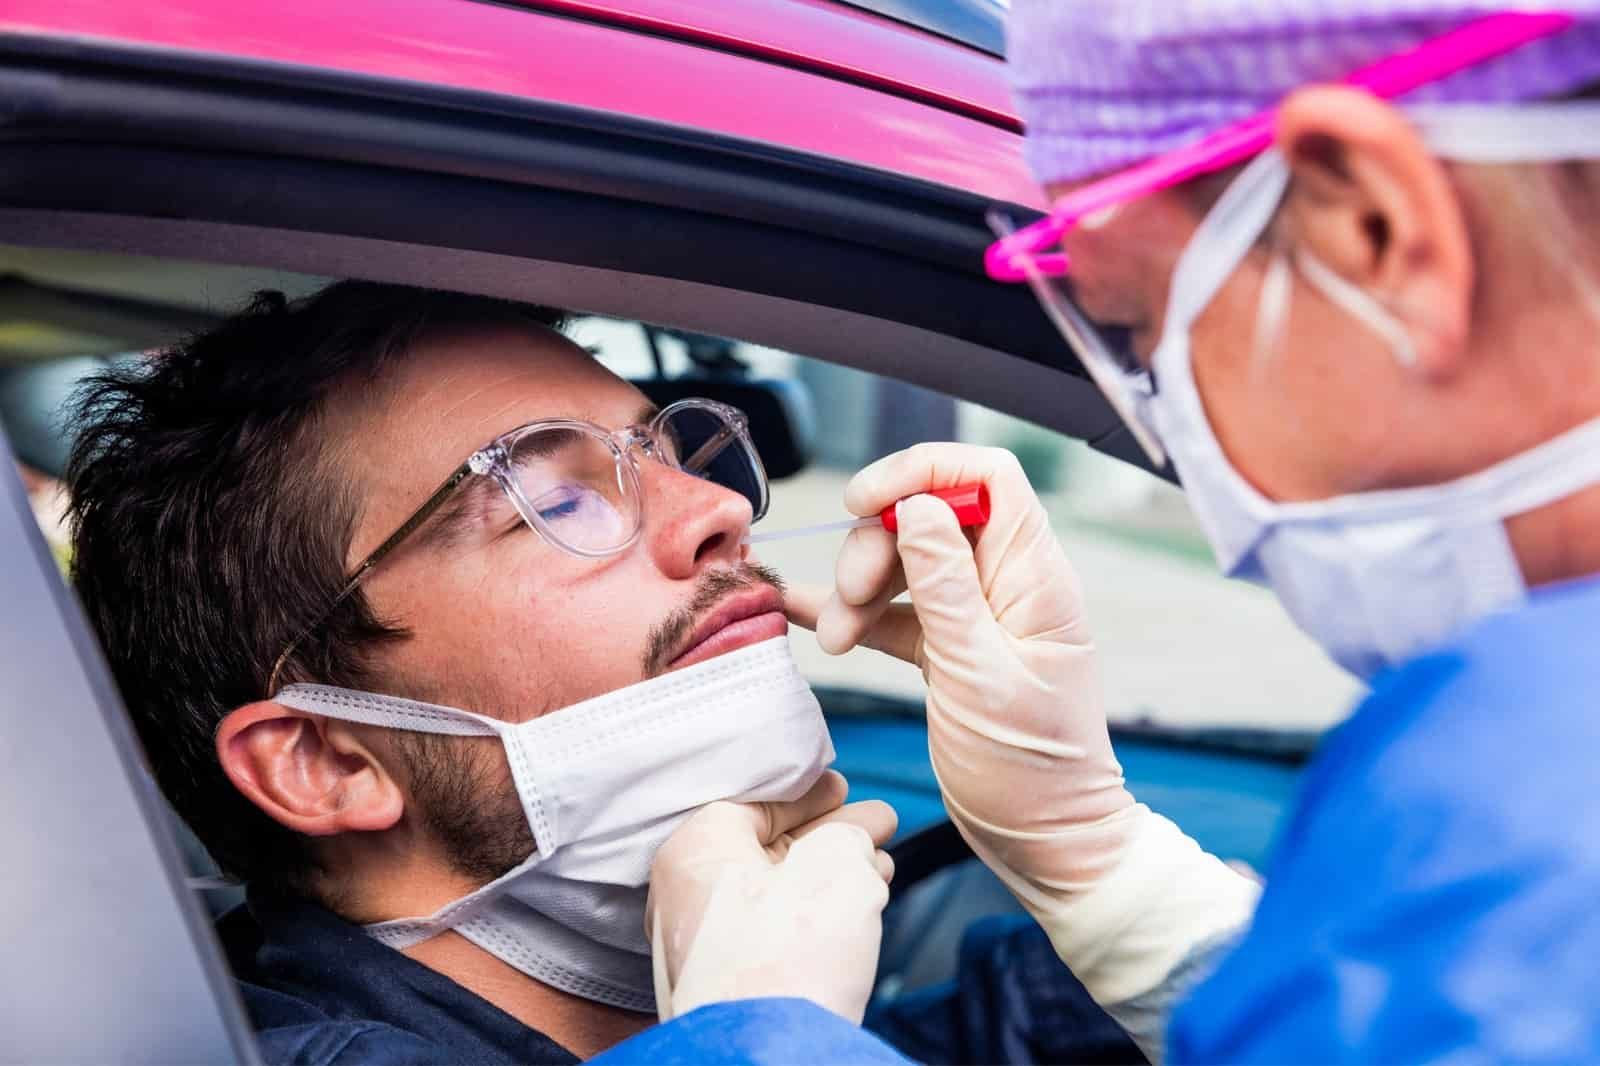 Health professional wearing PPE tests man for new COVID-19 variant at drive-up testing site